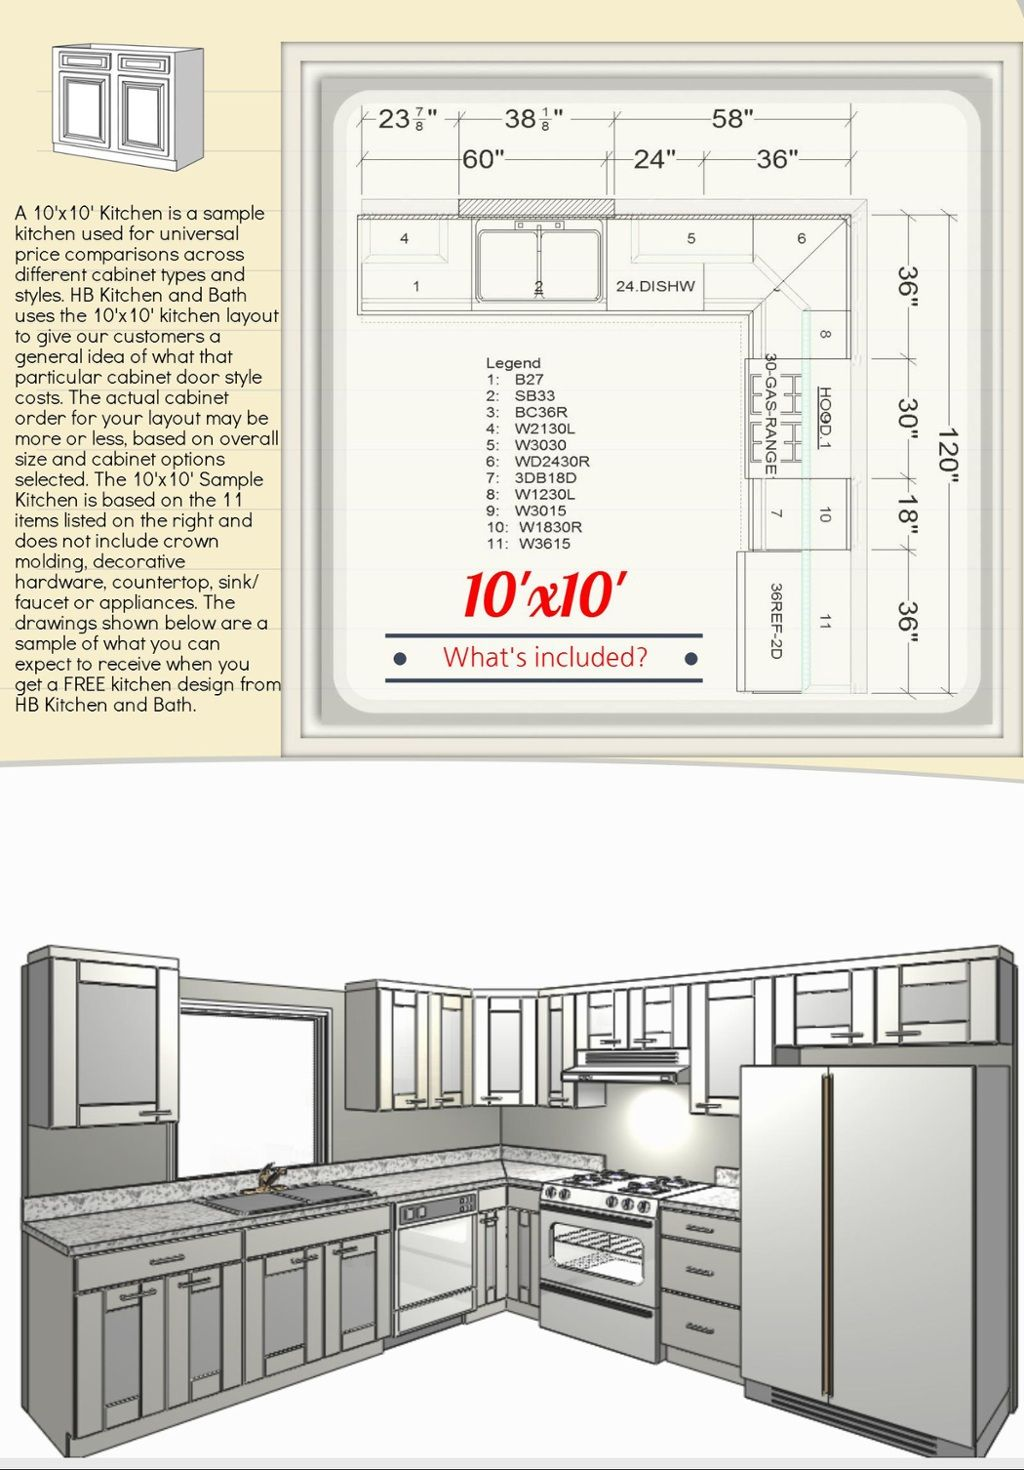 10x10 Kitchen Cabinets: TOUCH This Image: See 10x10 Cabinet Styles By Mike Mao